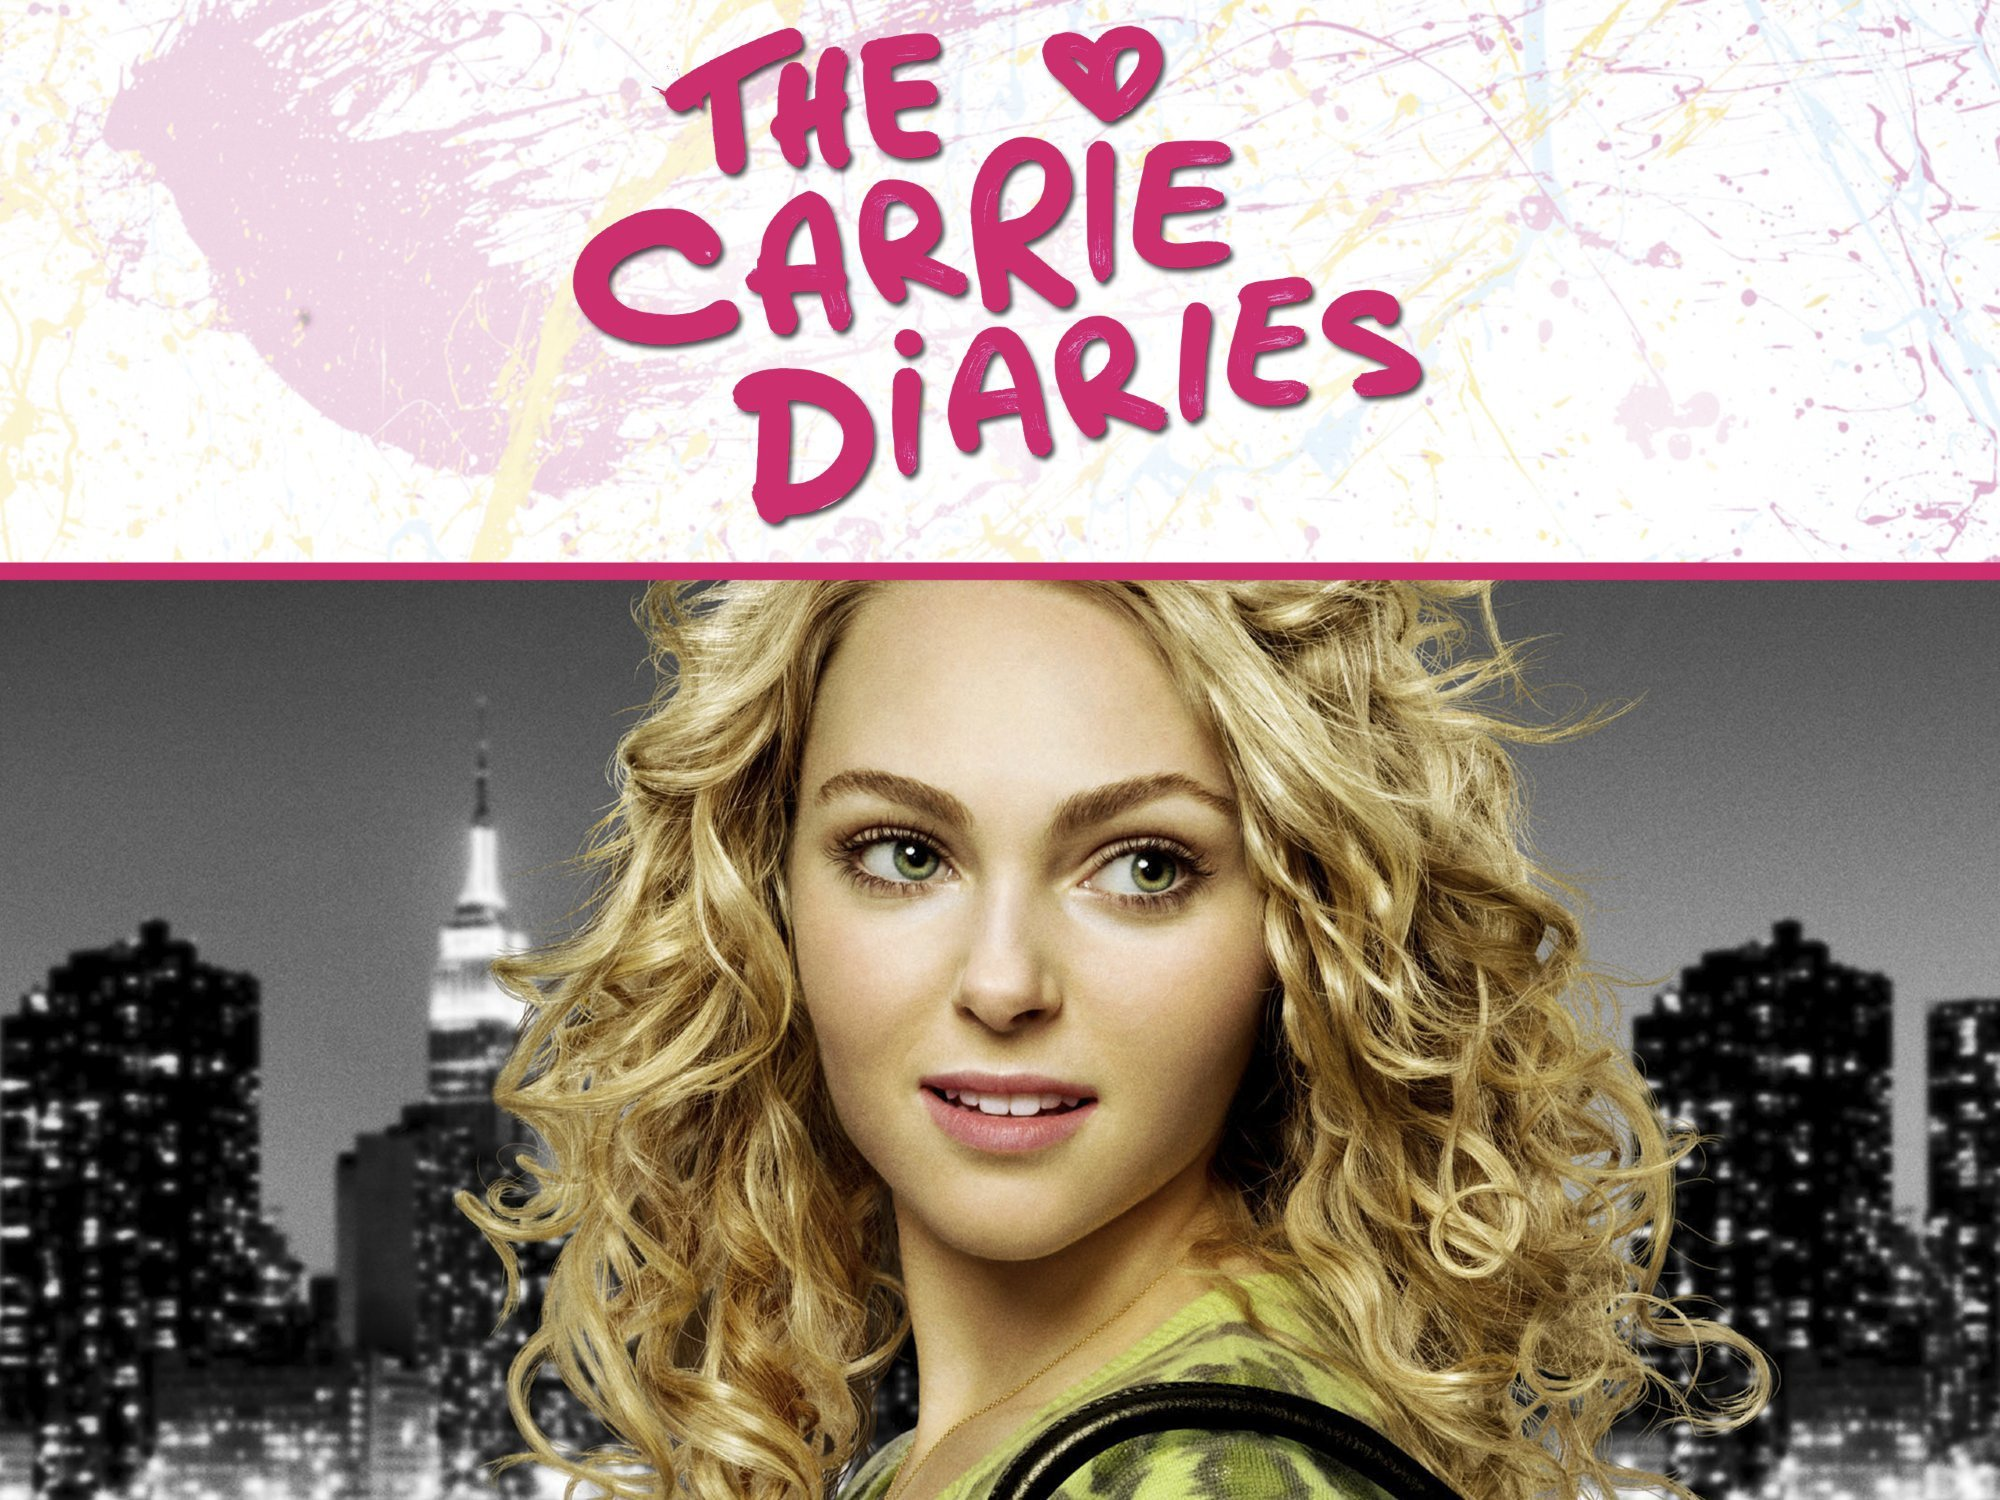 The carrie diaries kiss yesterday goodbye online dating